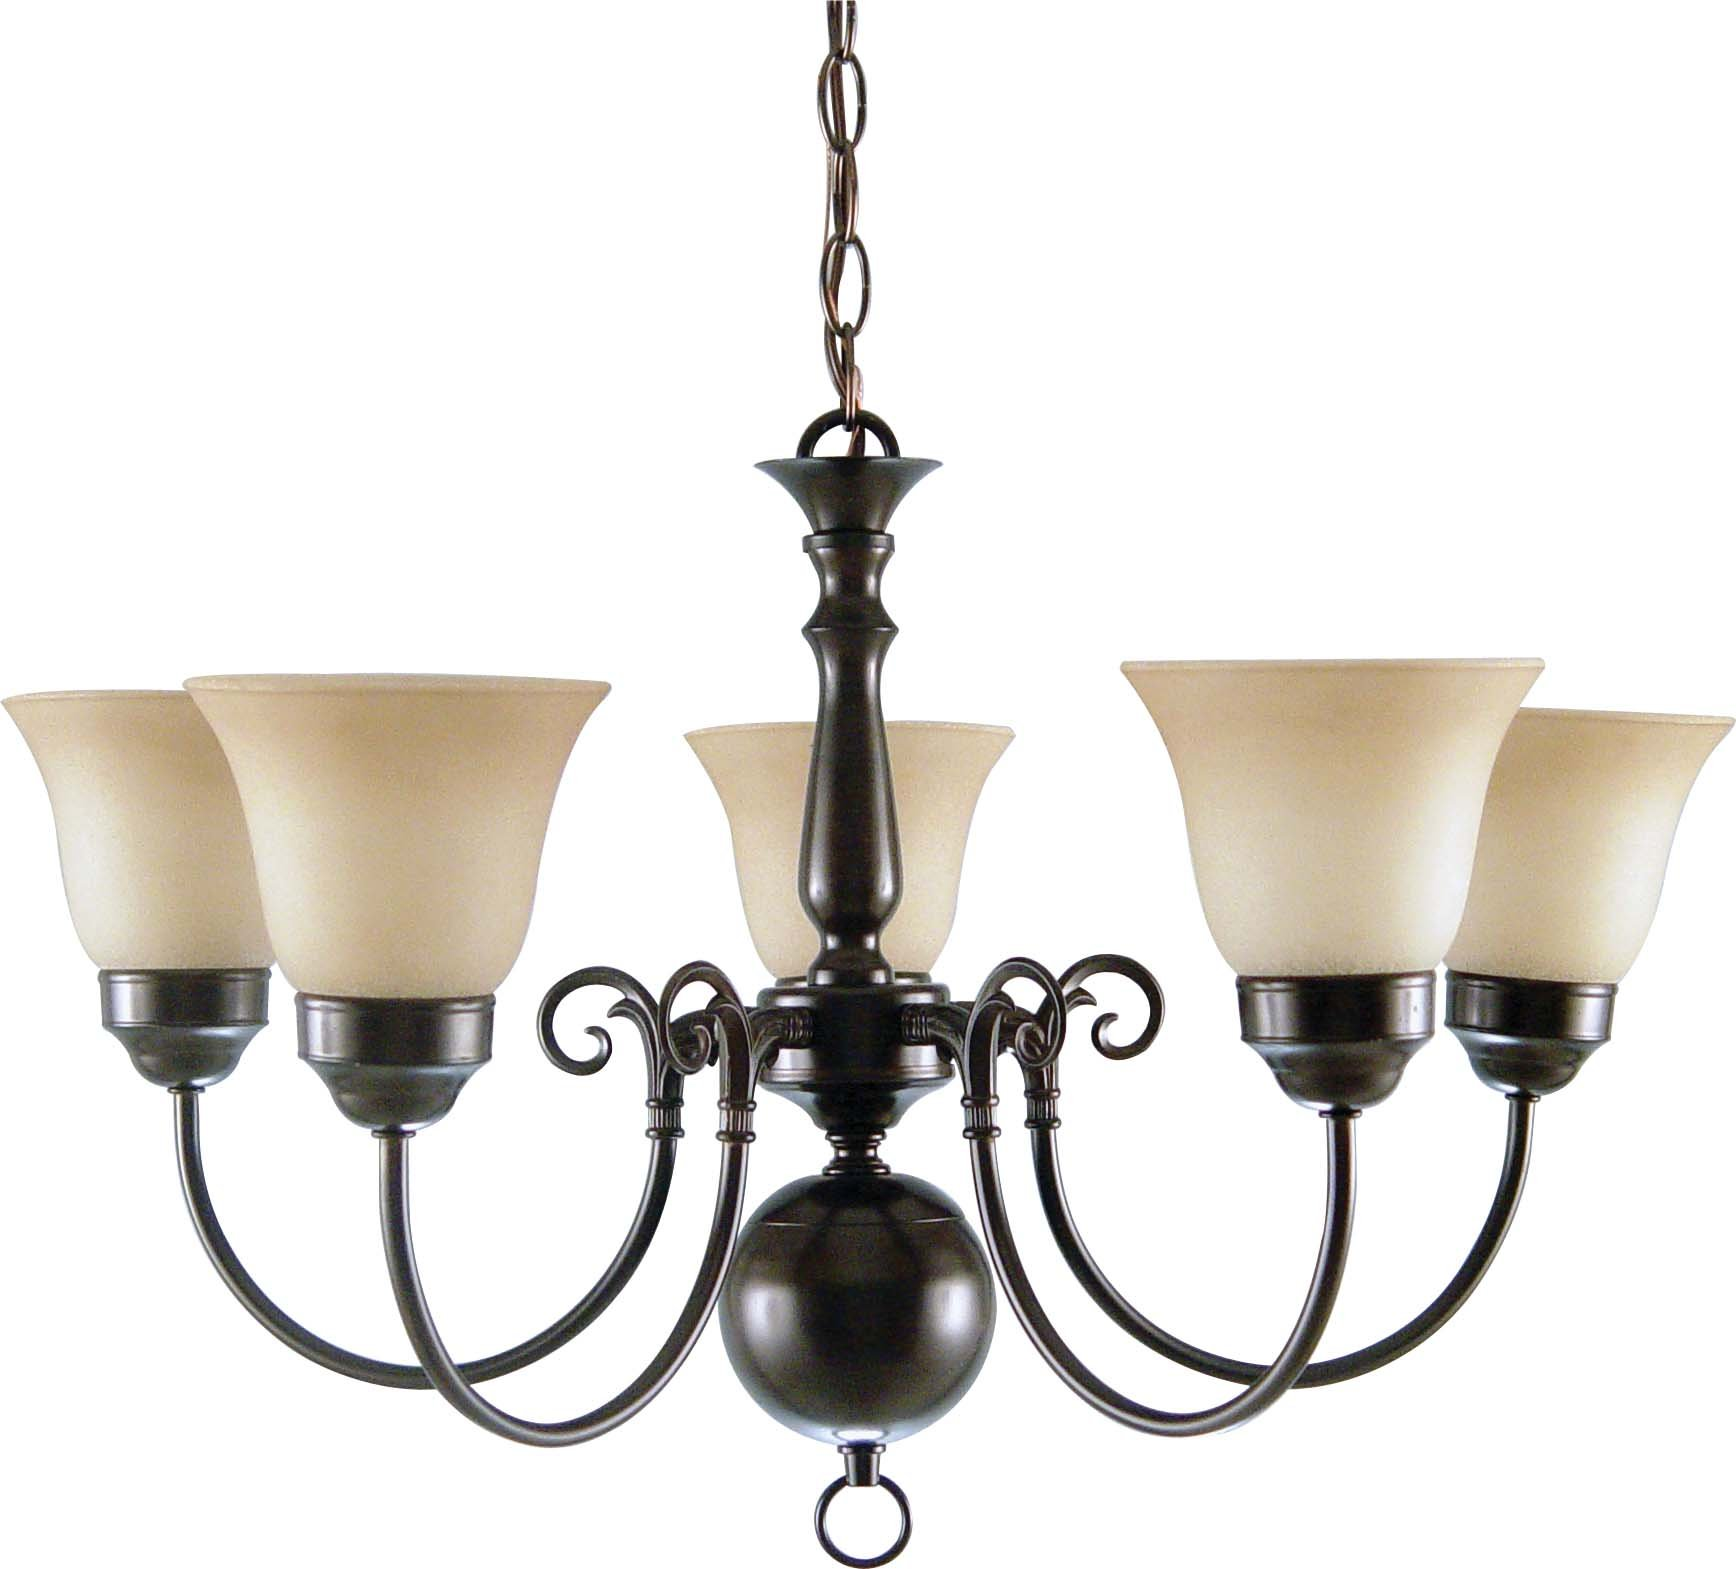 Volume Lighting V3545-83 5 Light Roman Chandelier, Bronze